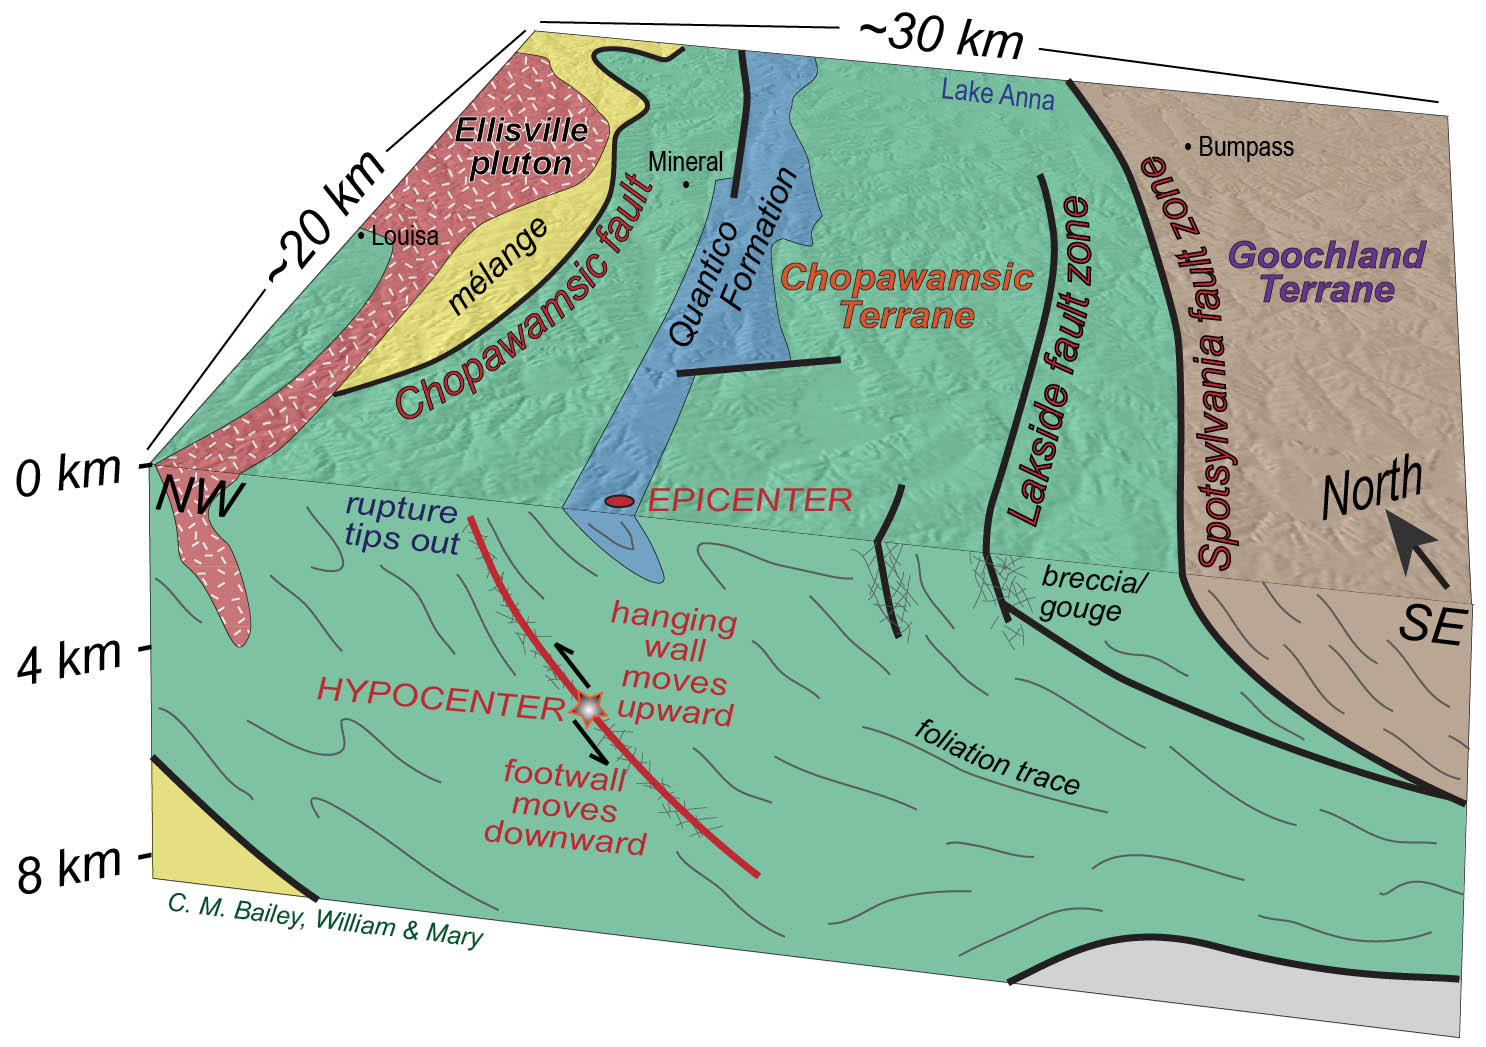 all shook up  the virginia earthquake   the william  amp  mary blogsblock diagram of the central virginia piedmont illustrating earthquake hypocenter on a southeast dipping reverse fault  note  rupture did not reach the